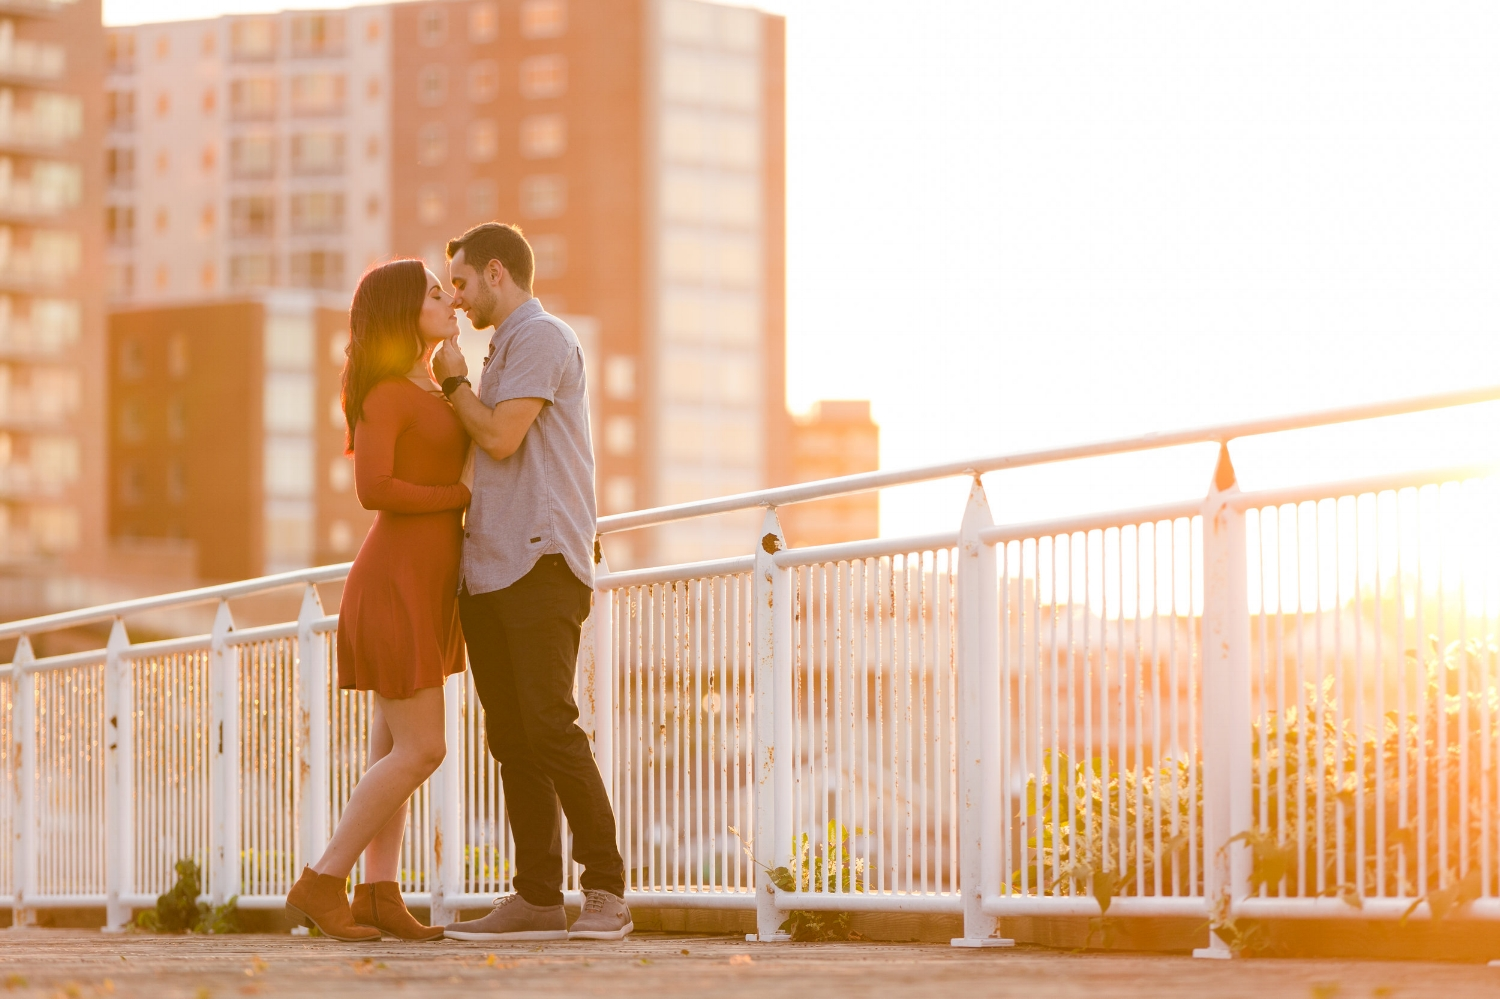 jacnjules photographs engagement in red bank NJ using natural light